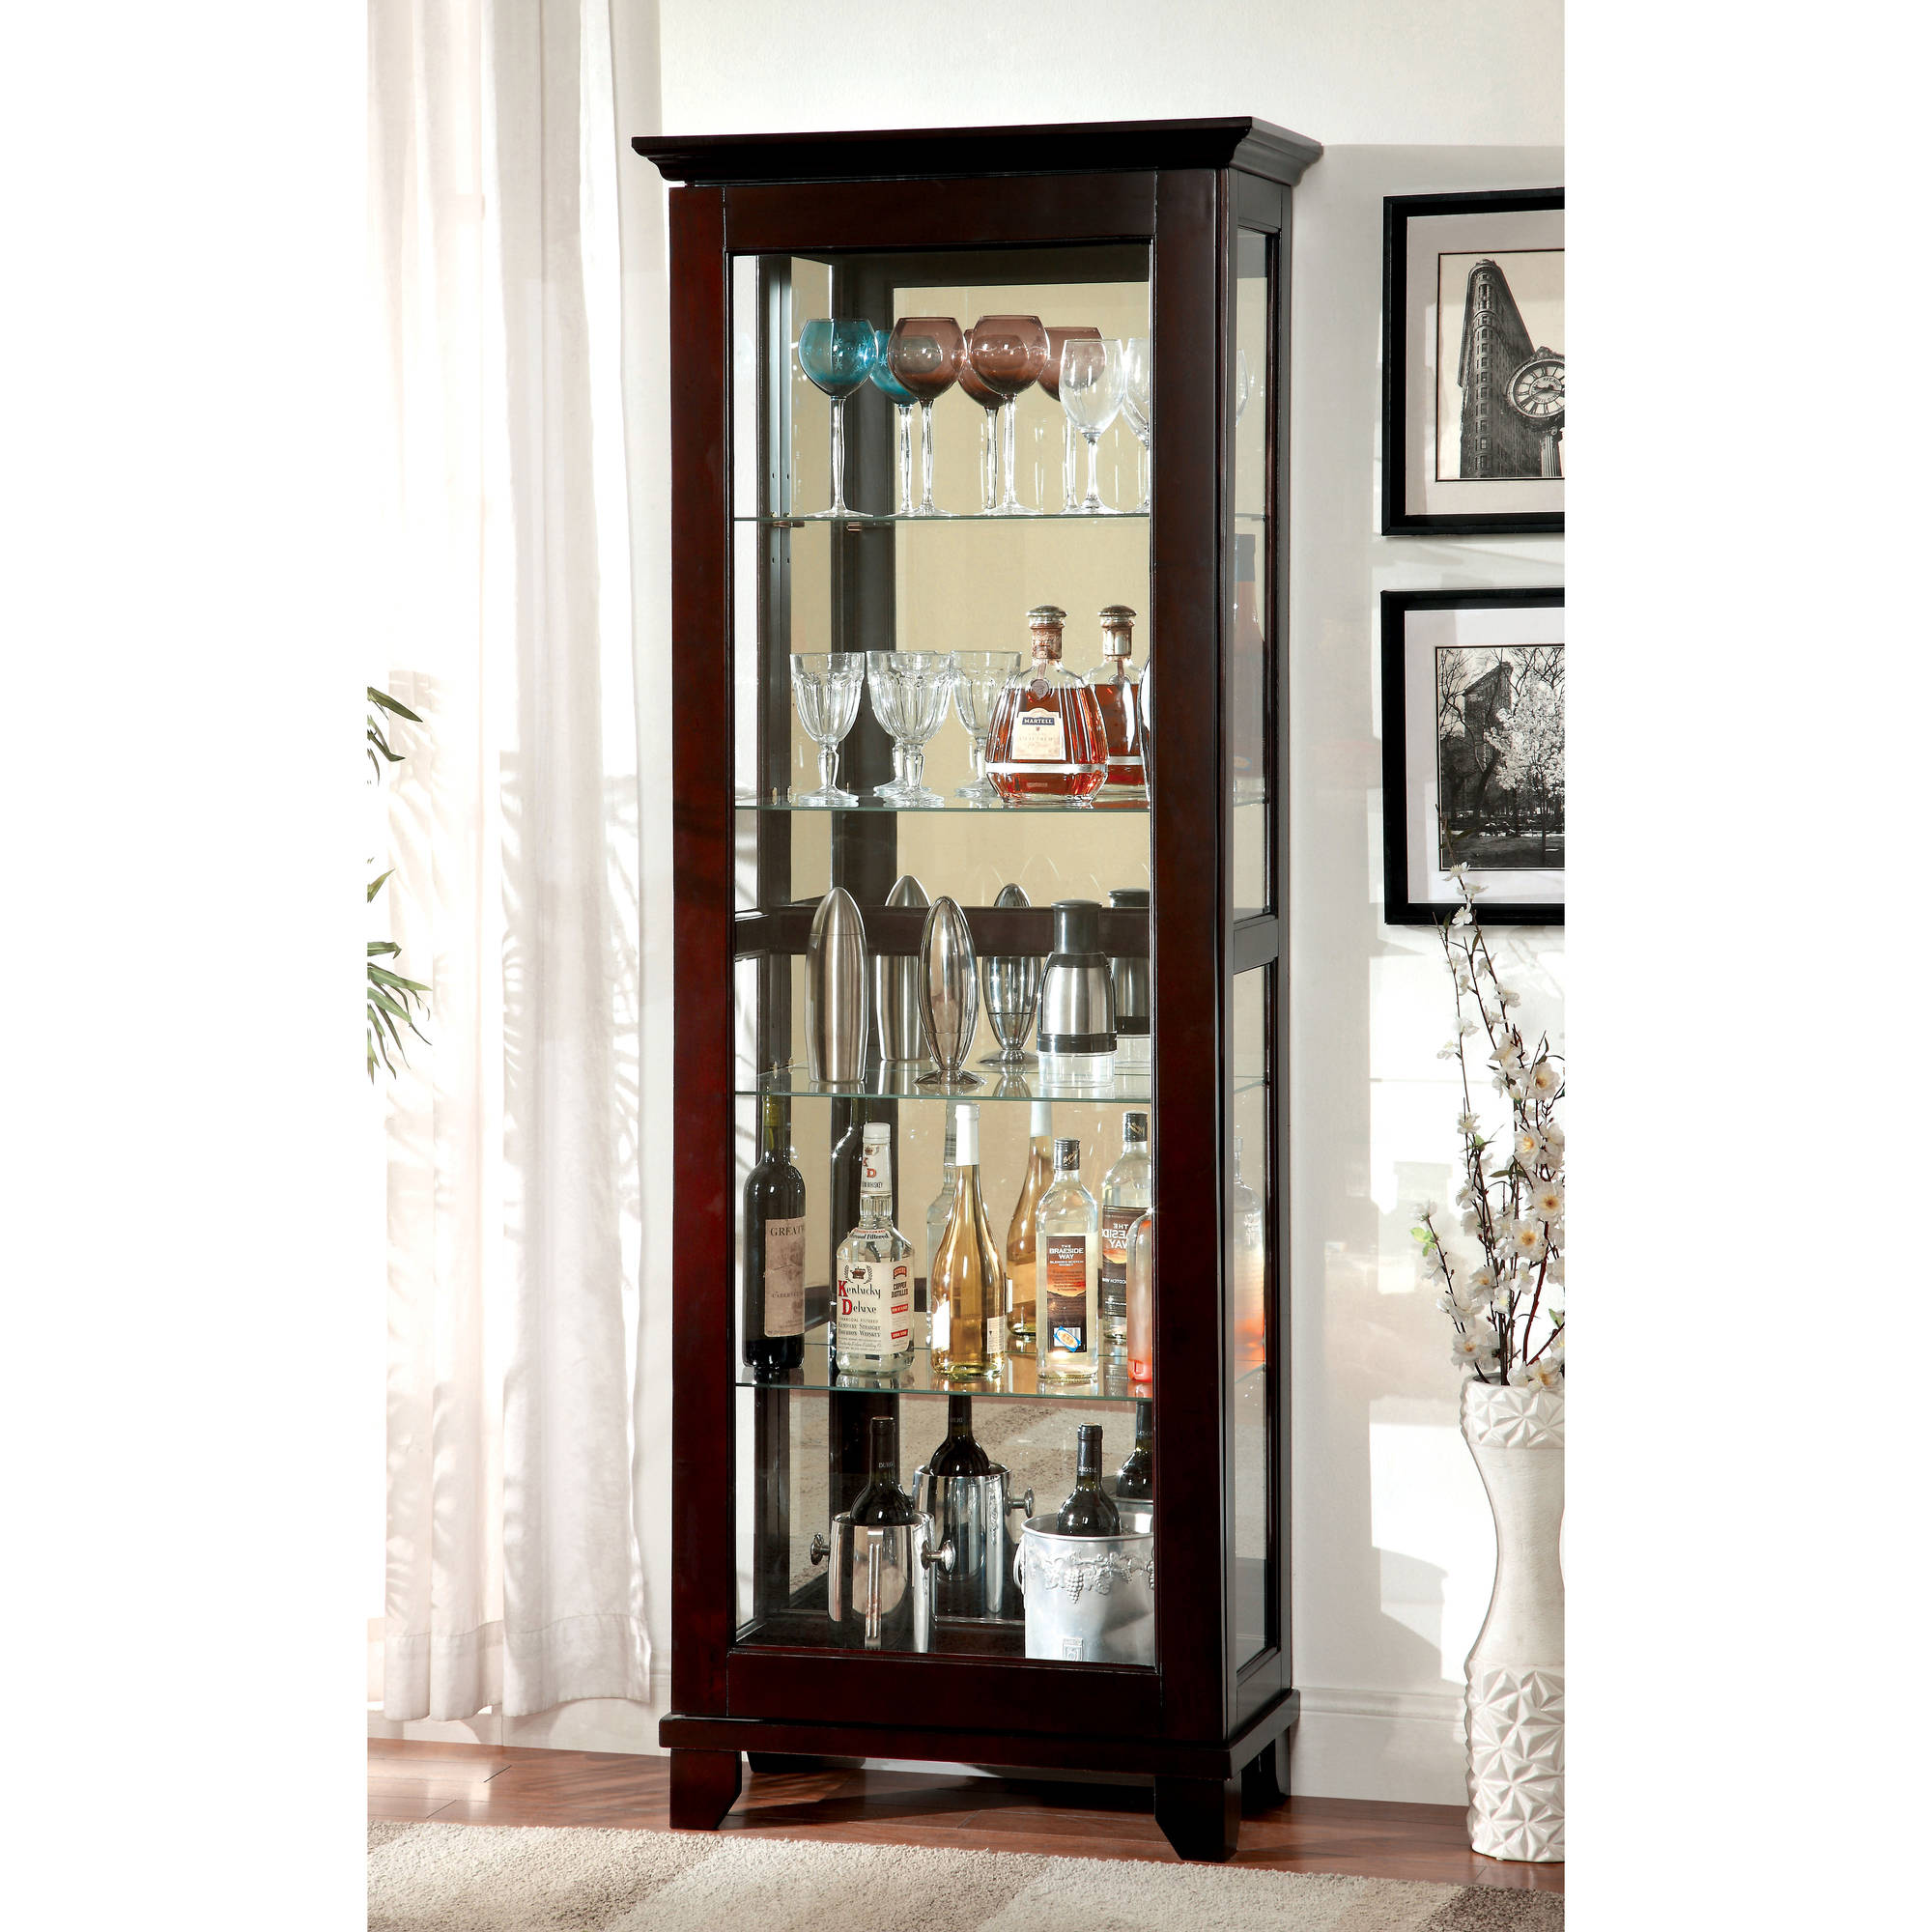 Furniture of America Gideon Contemporary Curio Cabinet, Dark Walnut by Furniture of America